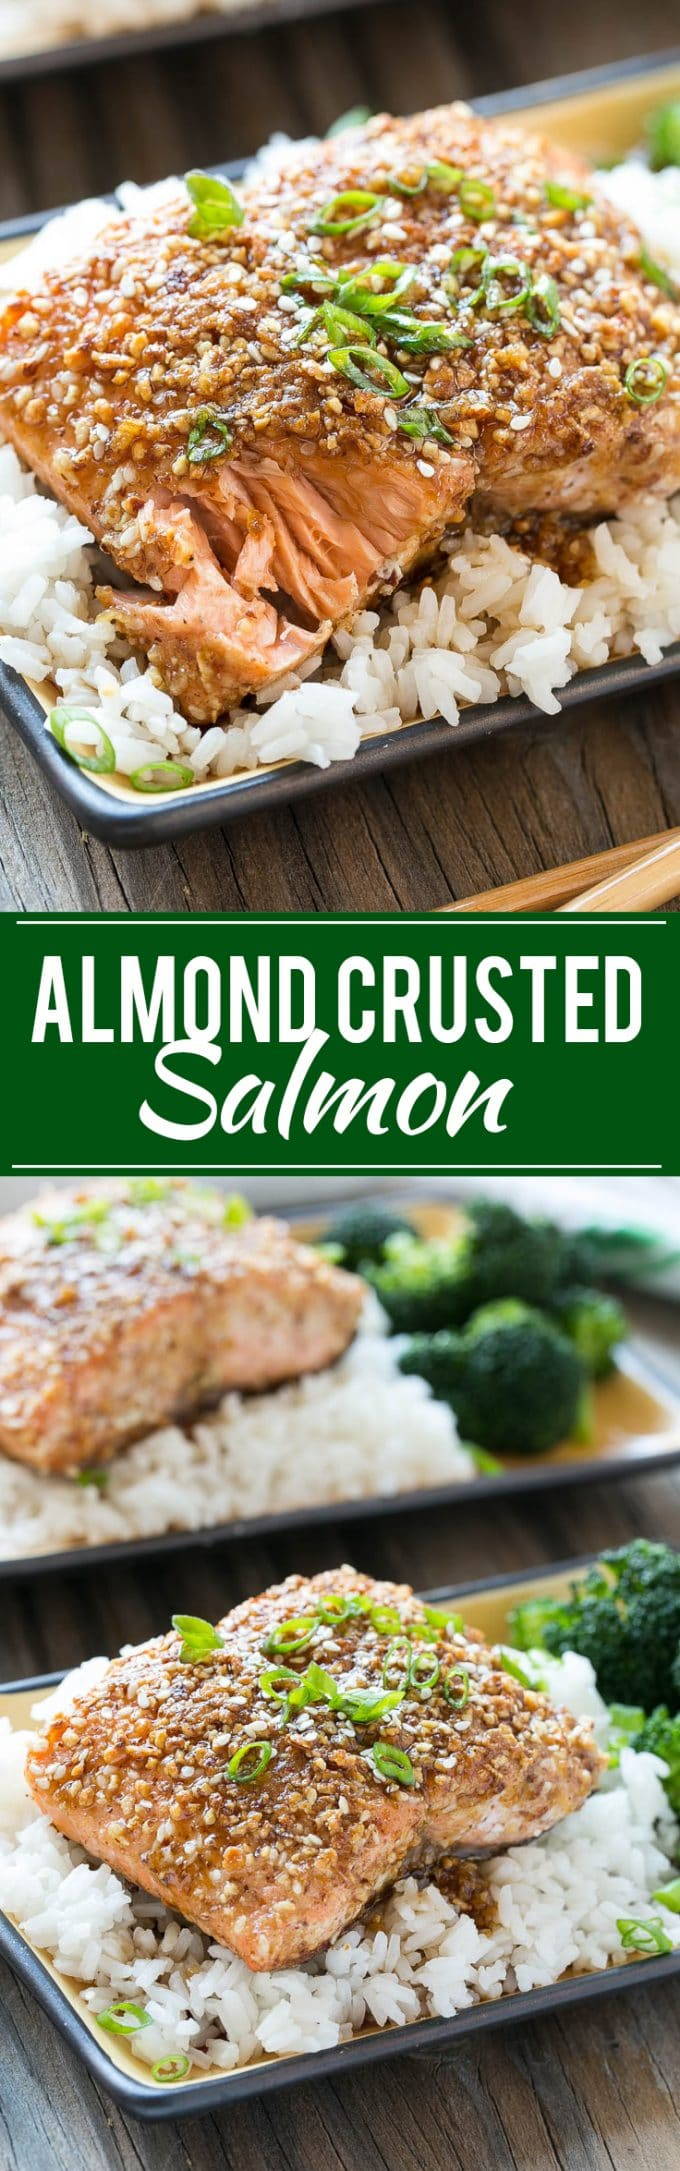 Almond Crusted Salmon with Honey Garlic Sauce Recipe | 7 Ingredient Meal | Almond Crusted Chicken | Honey Garlic Sauce | Honey Garlic Chicken